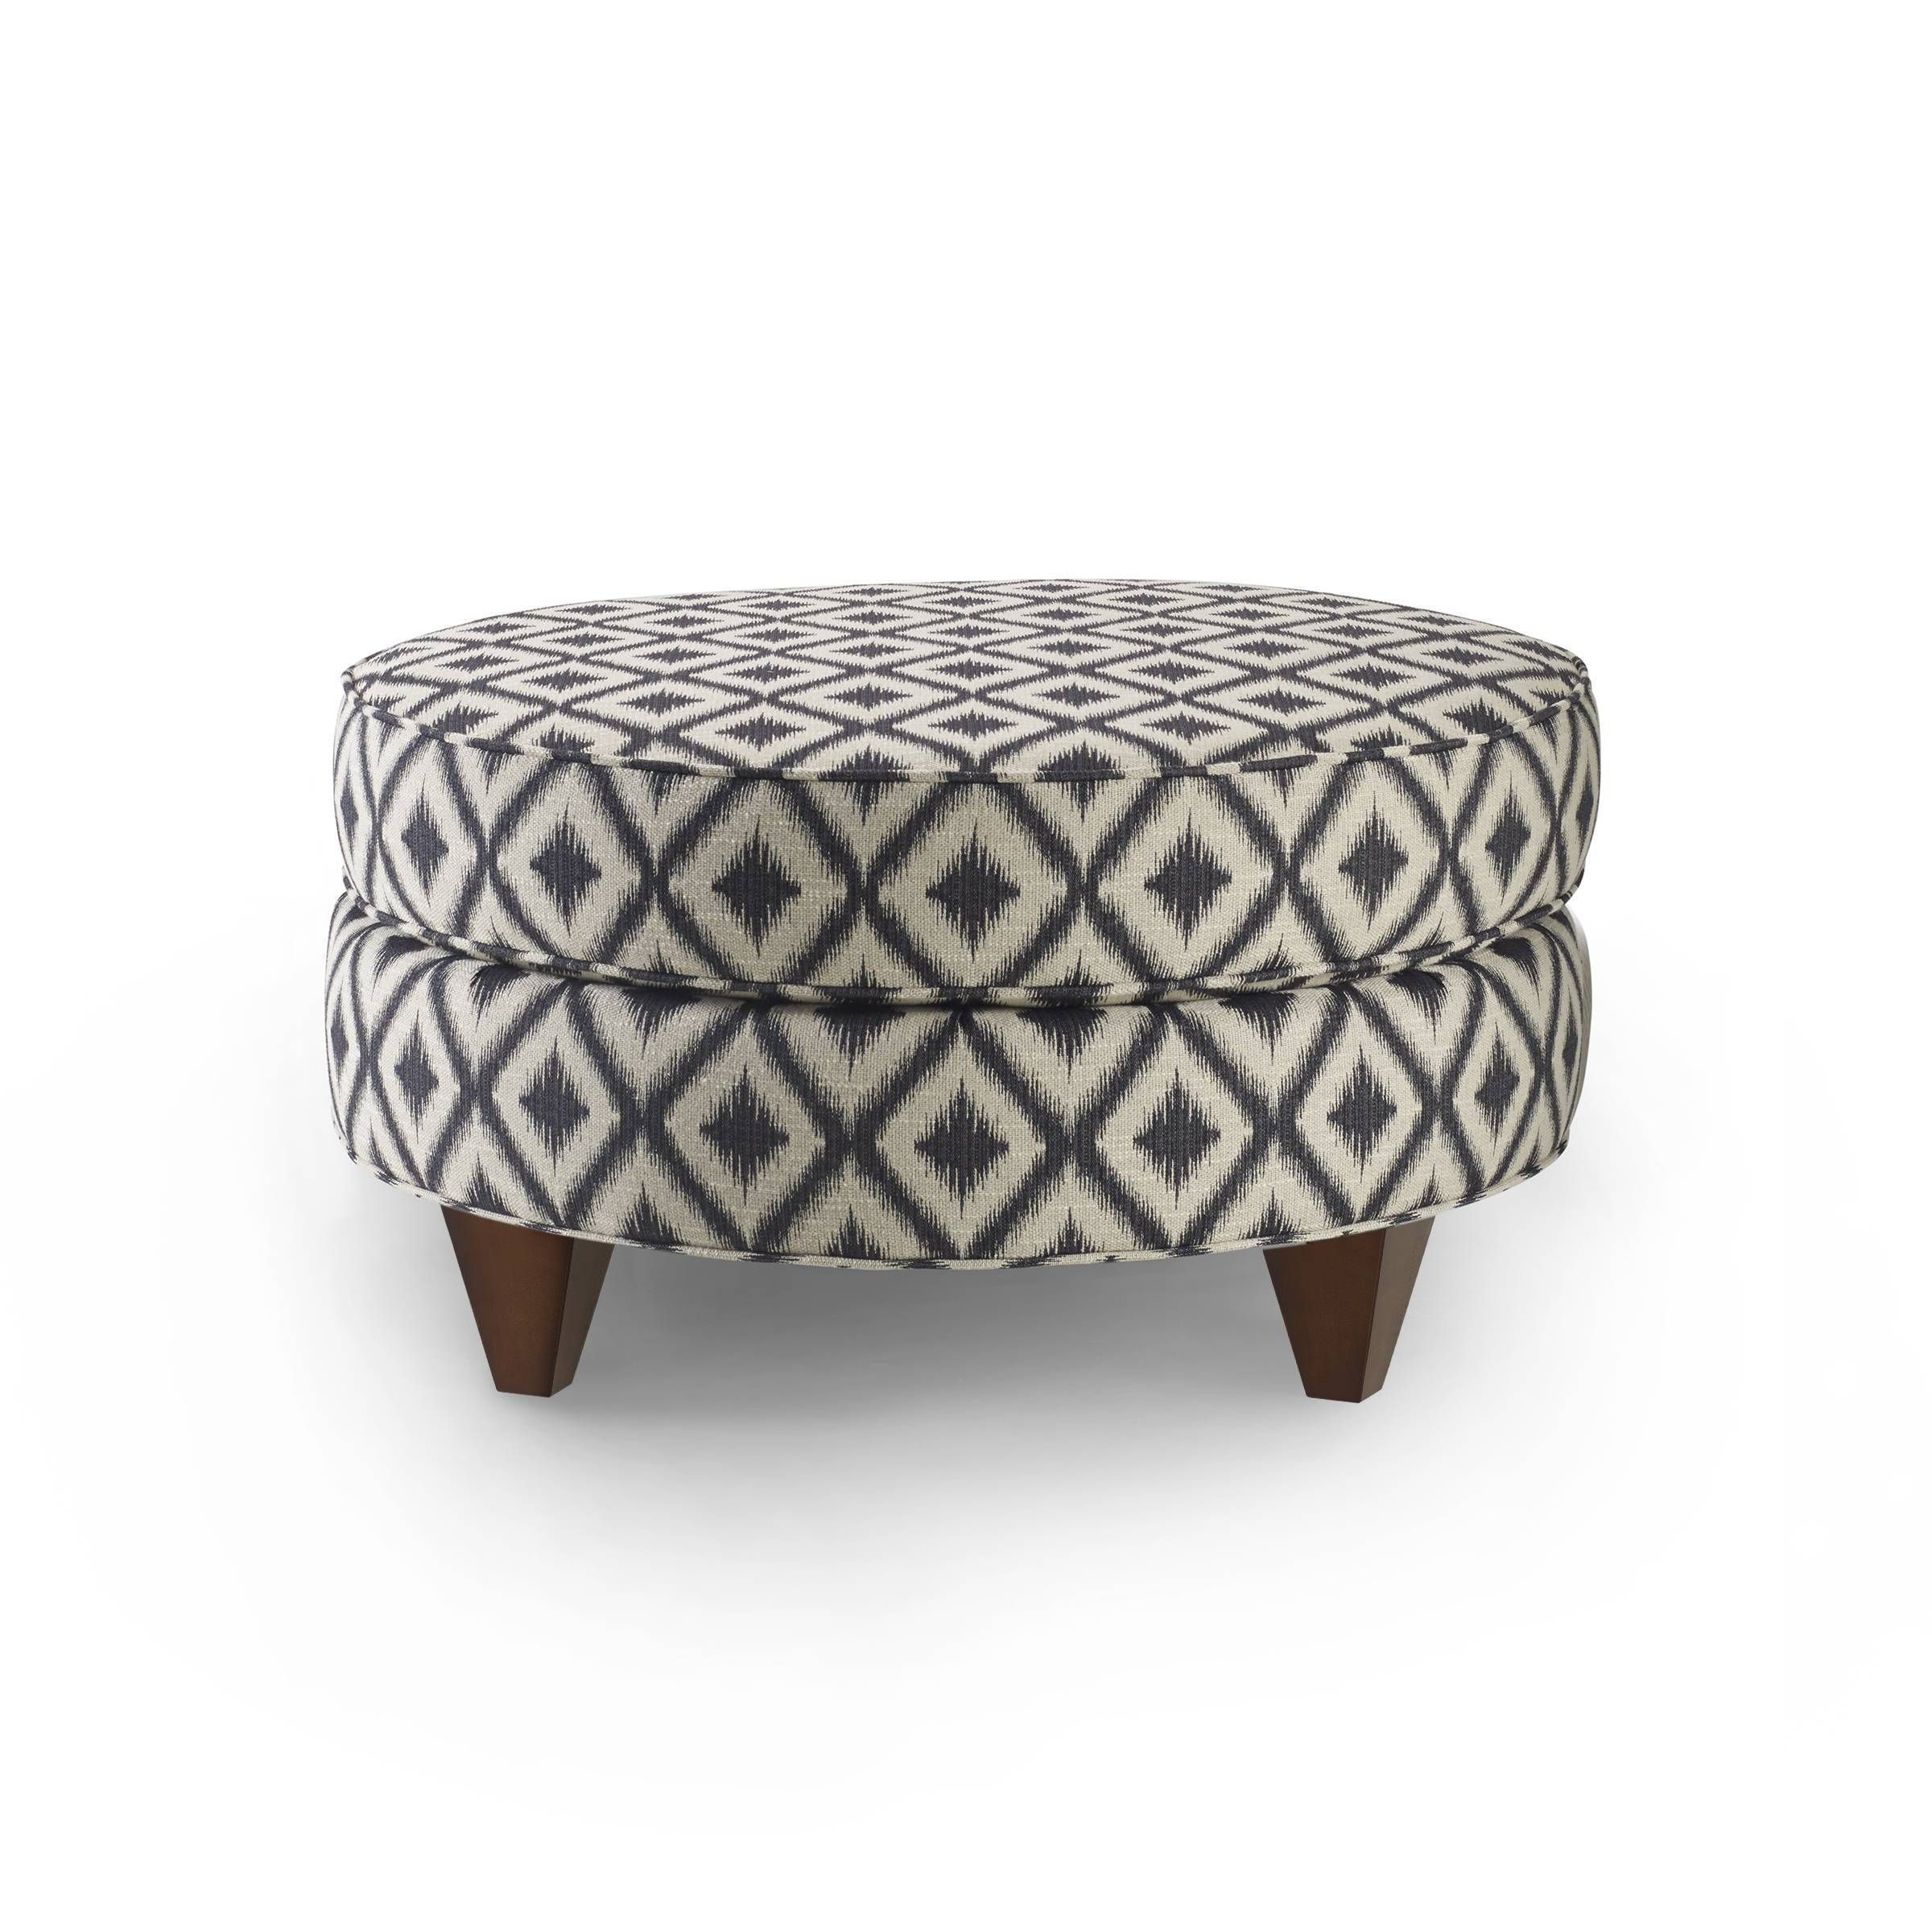 Add a pop of color to your bedroom with this on-trend Bax ottoman, featuring an espresso and cream upholstered top with comfortable foam filling. Designed with rich espresso wood legs, this on-trend ottoman is the ideal place to rest your feet.  416